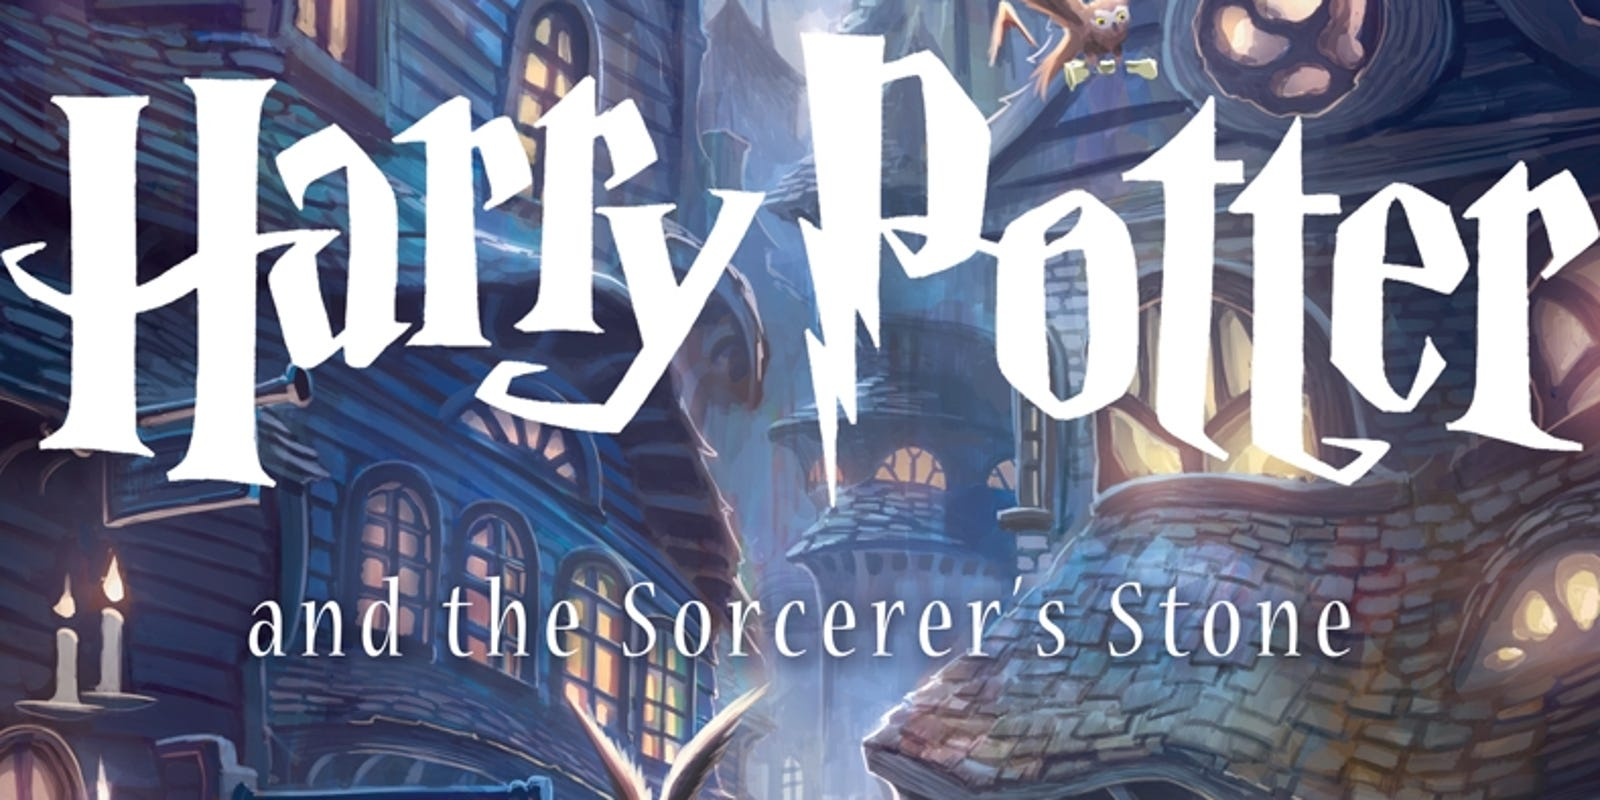 Harry Potter Book Jackets For Sale : Harry potter gets new book covers for th anniversary